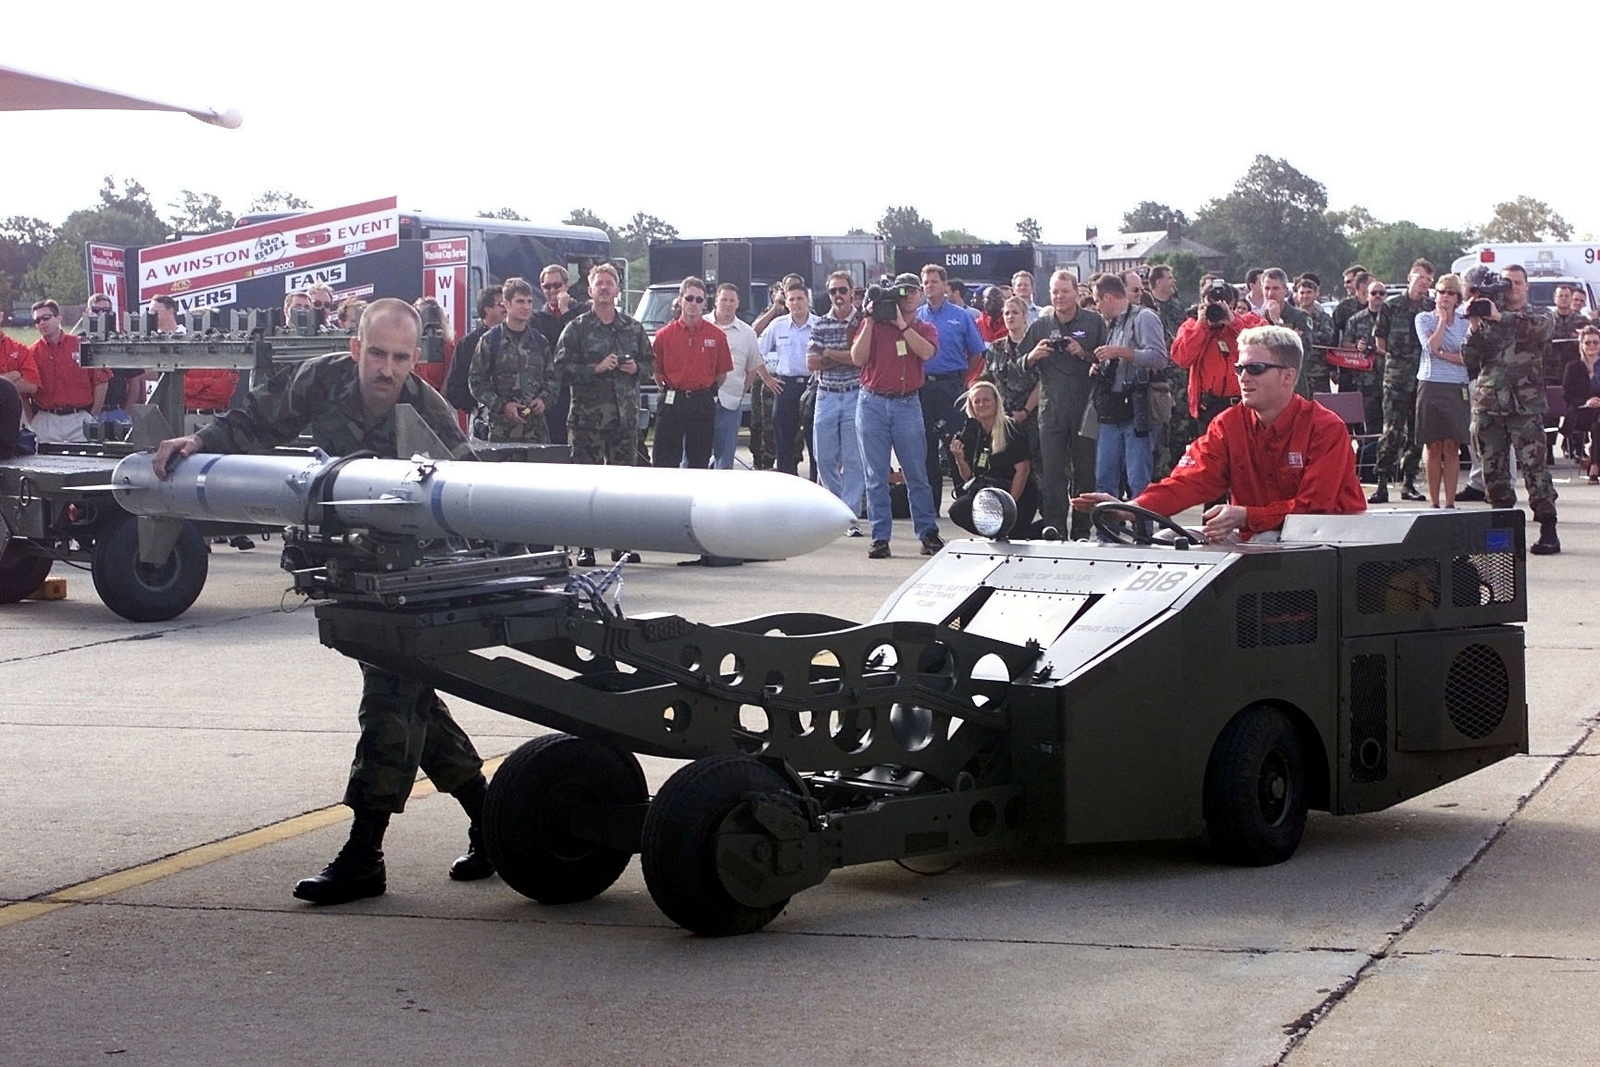 NASCAR Driver And 1999 Busch Series Champion Dale Earnhardt Jr Carefully Lines Up An AIM 120missile During A Load Crew Competition At Langley Air Force